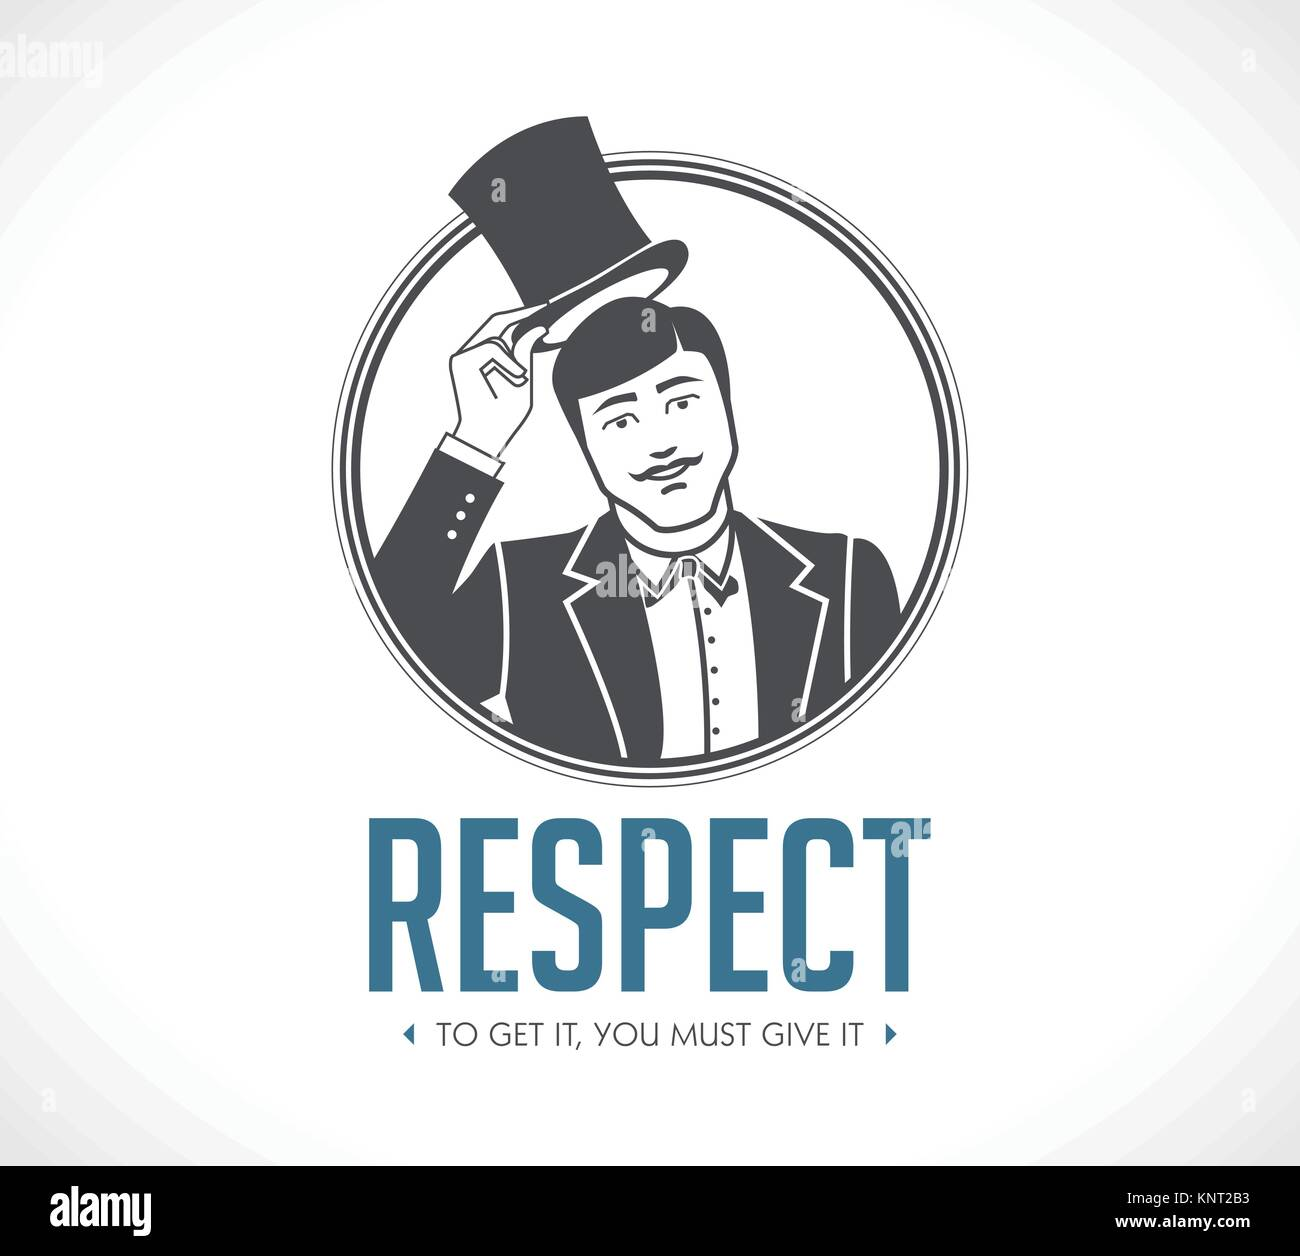 Respect logo - concept sign - man taking off his hat - icon – stock illustration - Stock Vector